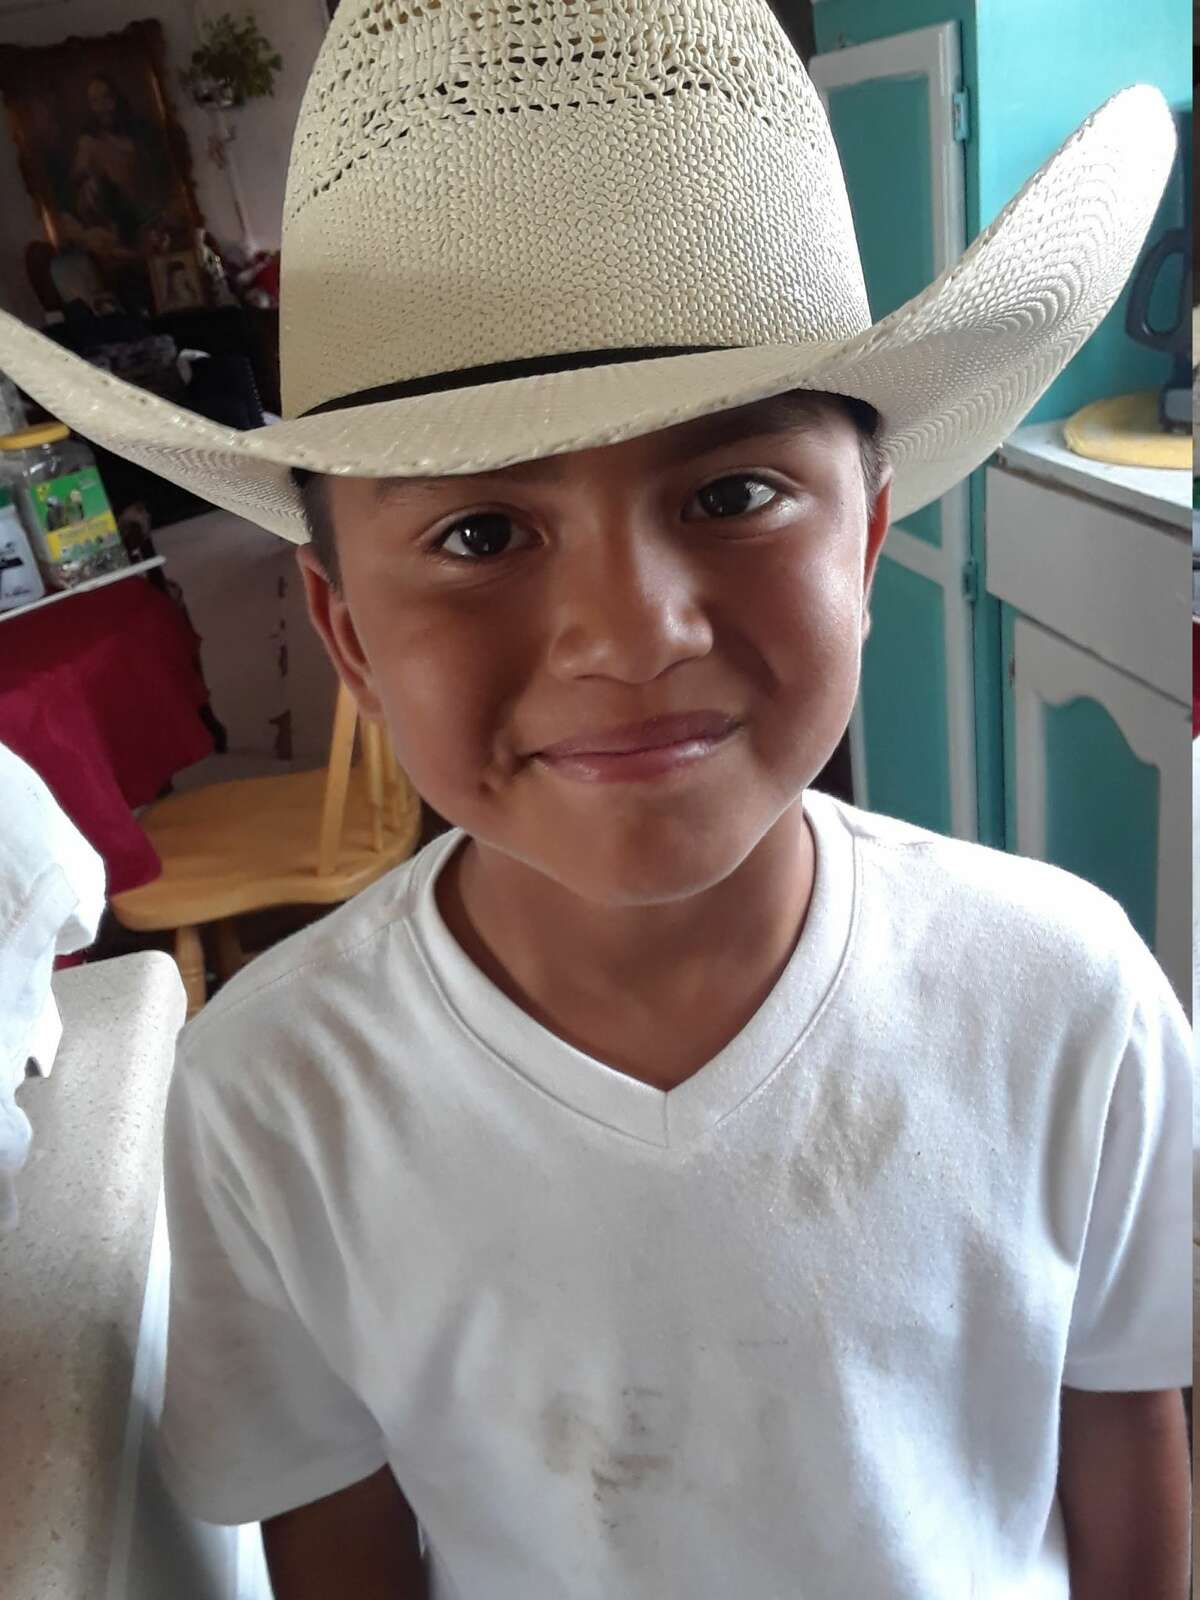 Elijah Belmares, 8, has been in a medically induced coma since Tuesday after getting hit by a bullet during a drive-by shooting.